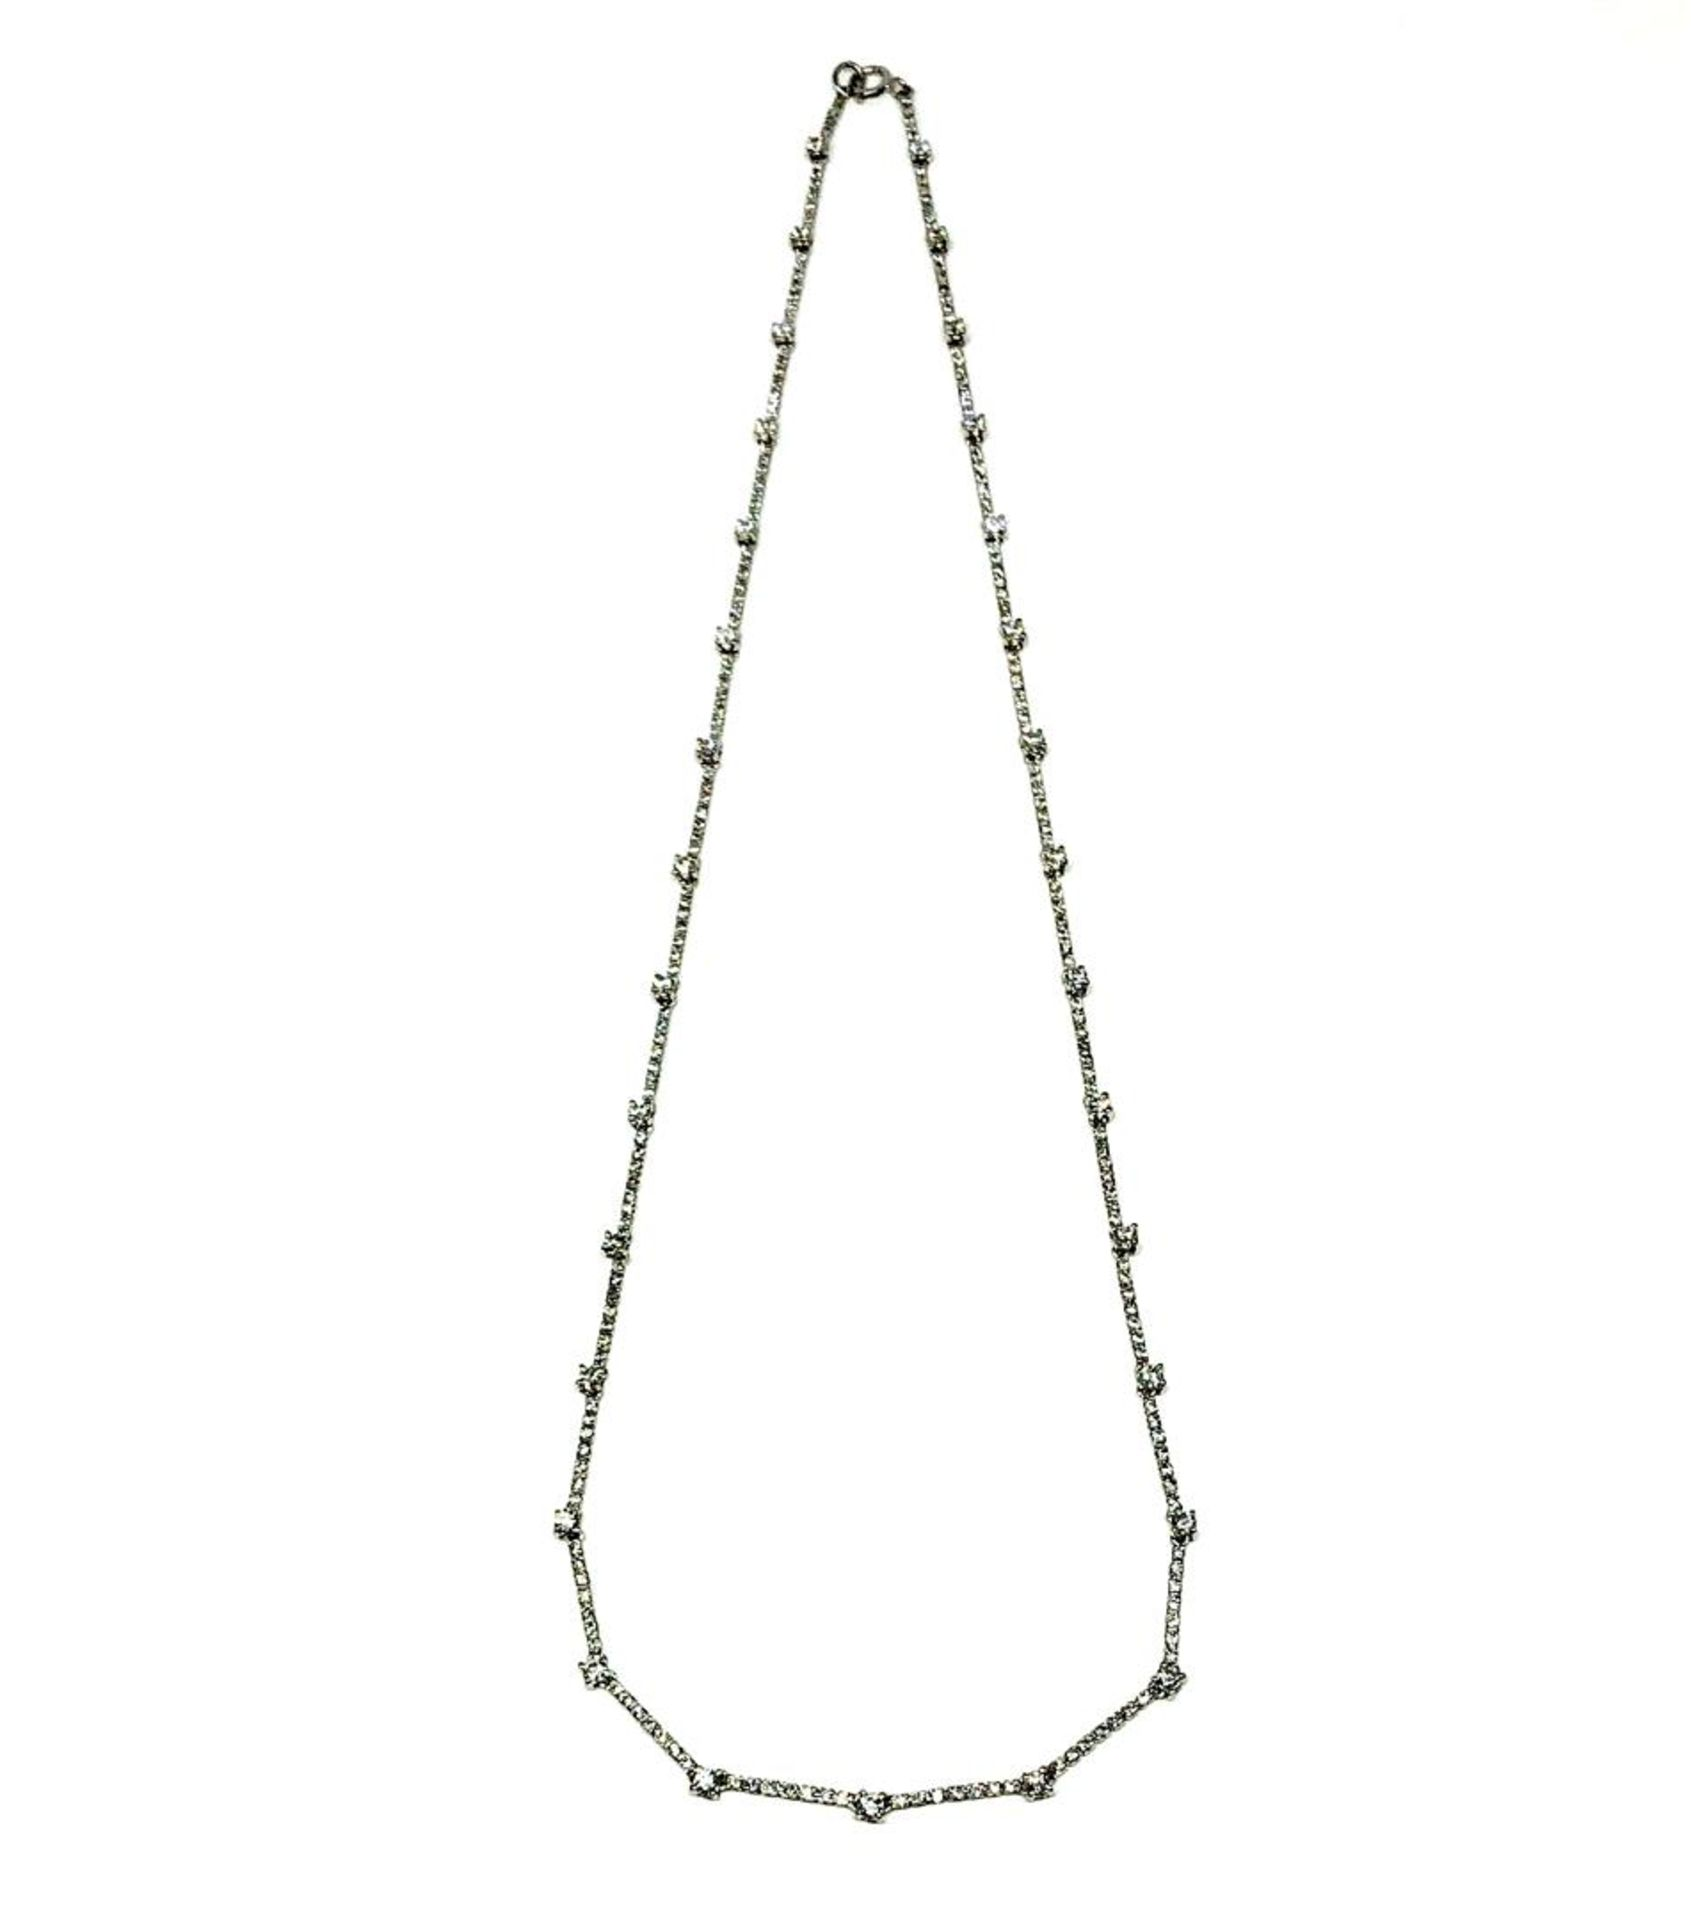 2.20 ctw Diamond Necklace - 18KT White Gold